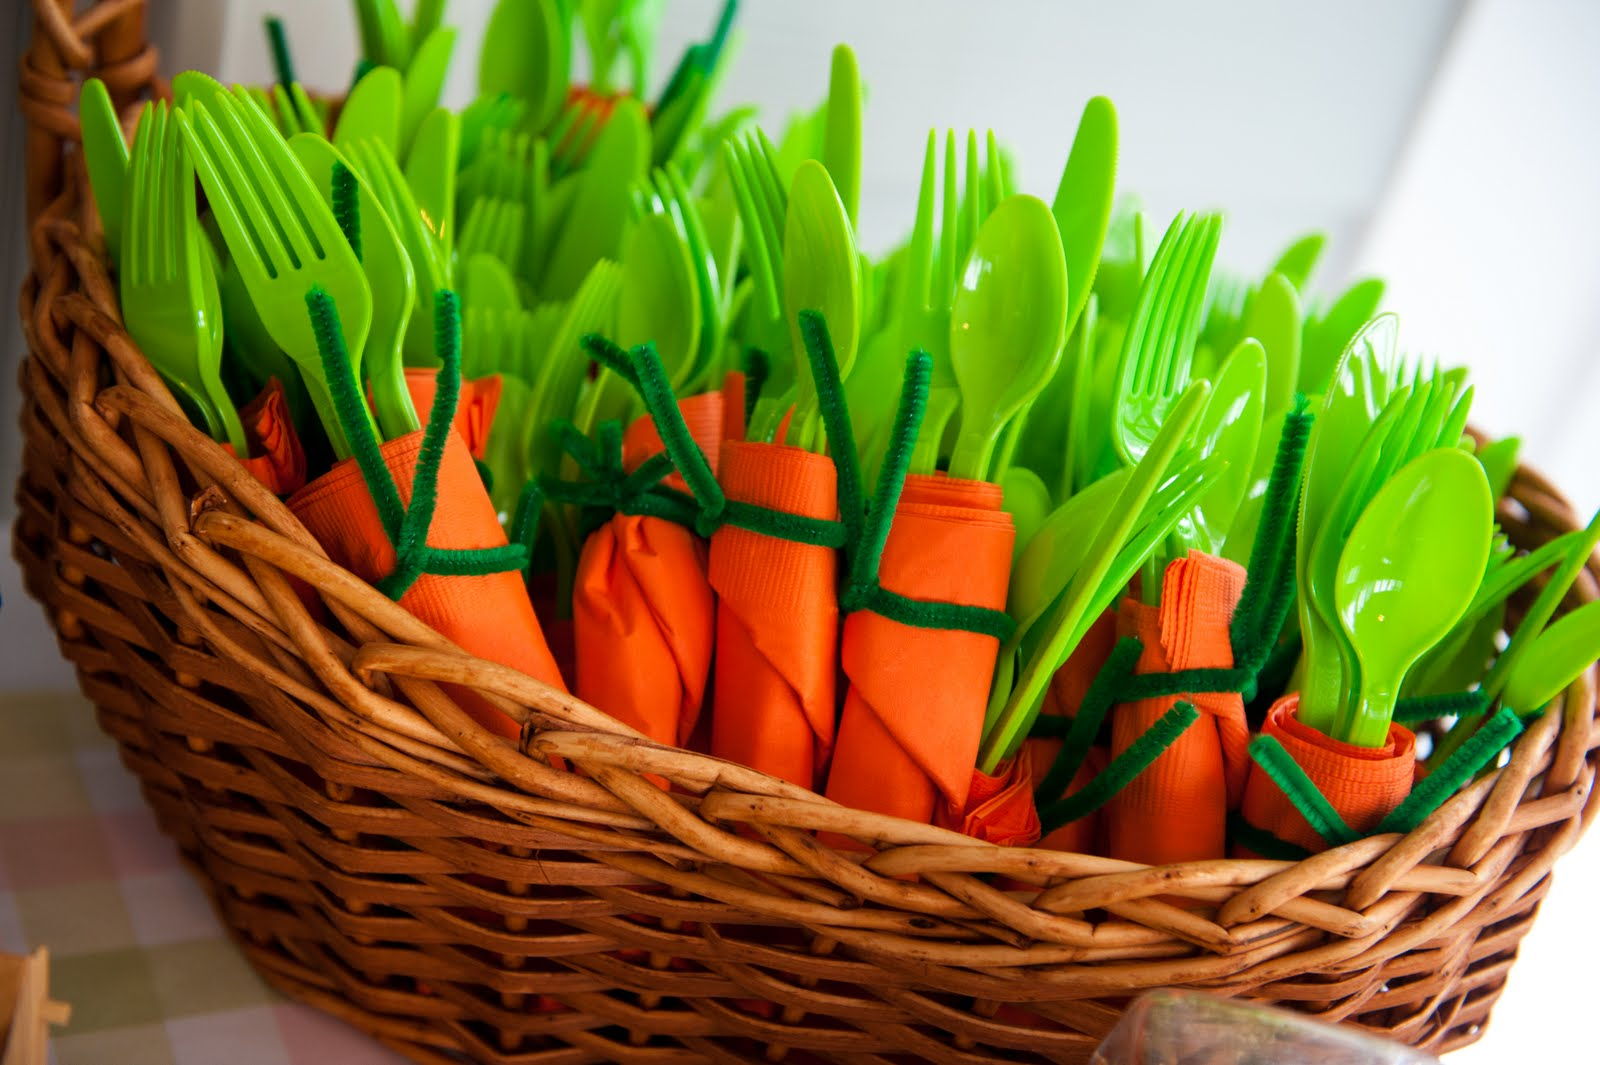 Carrot Silverware Bundles